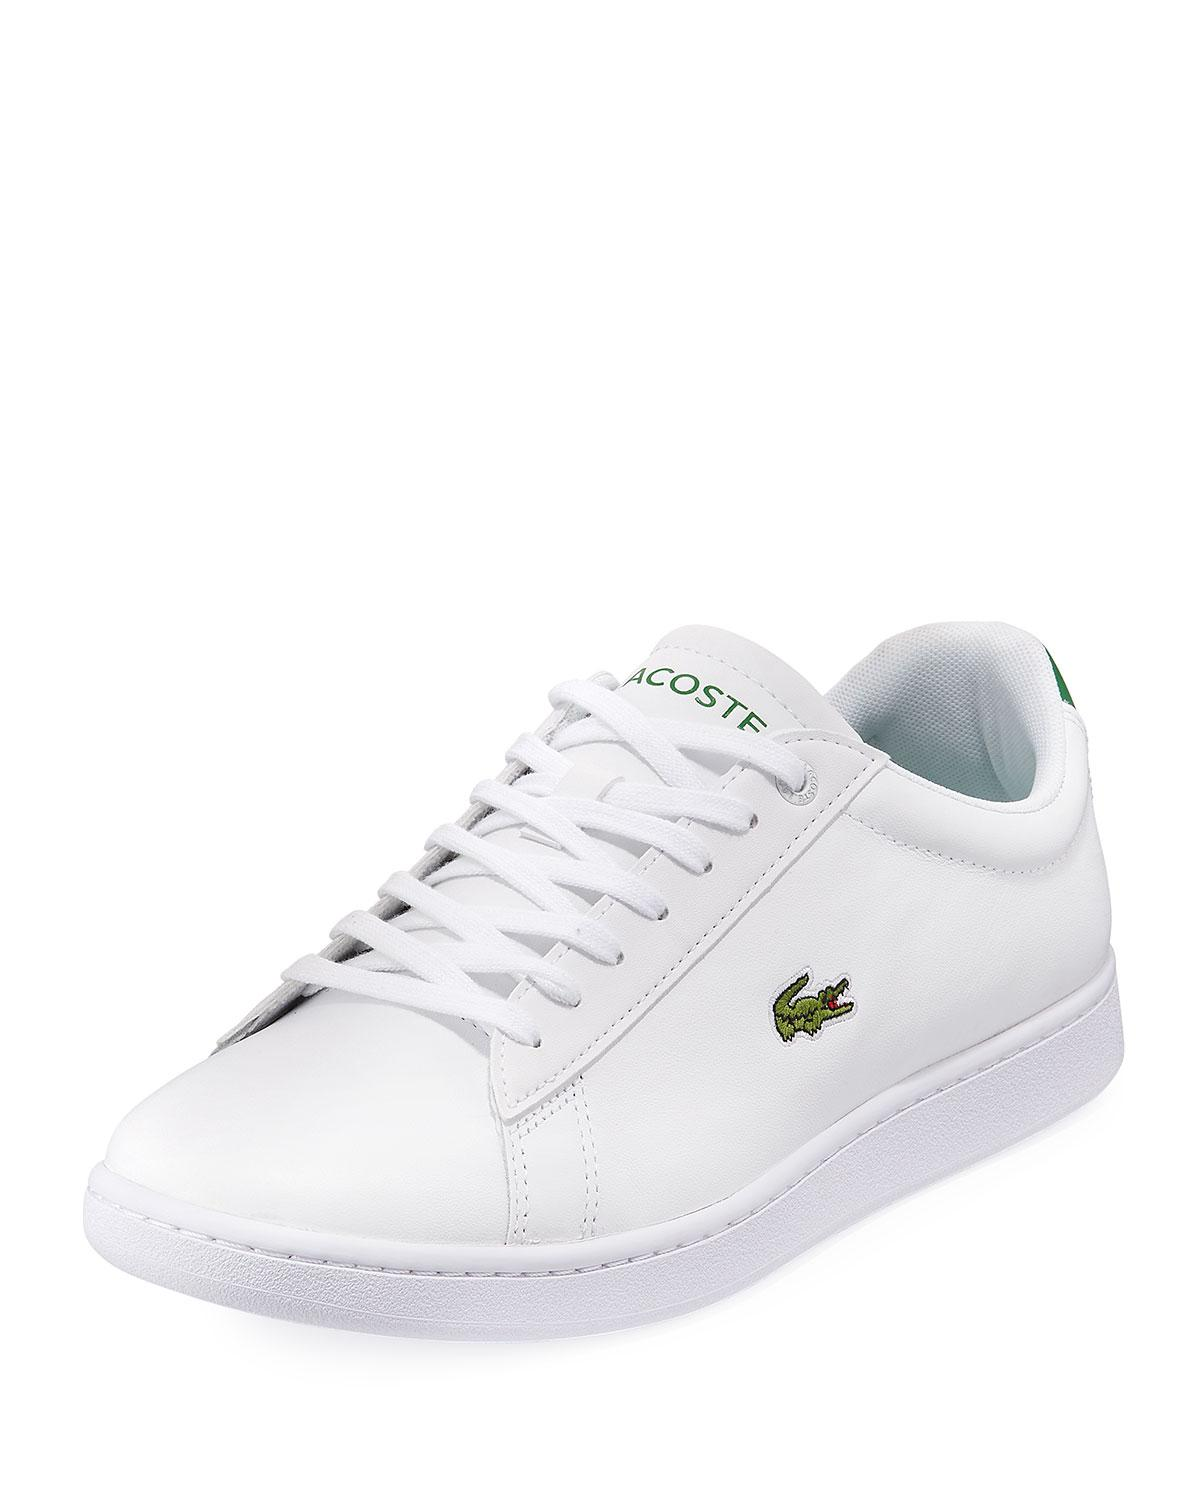 a330b4472620 Lyst - Lacoste Men s Hydez Leather Sneakers in White for Men